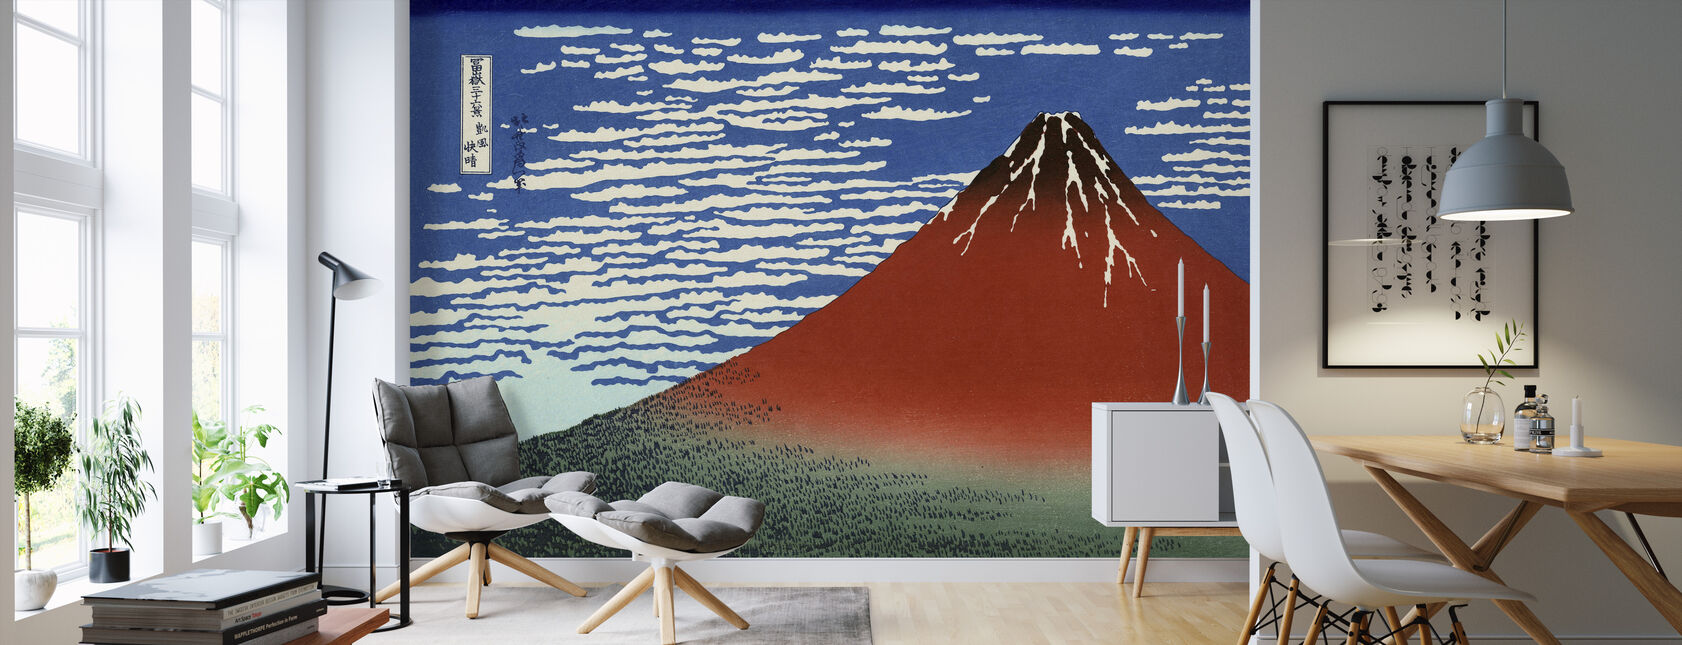 Red Fuji, Katsushika Hokusai - Wallpaper - Living Room